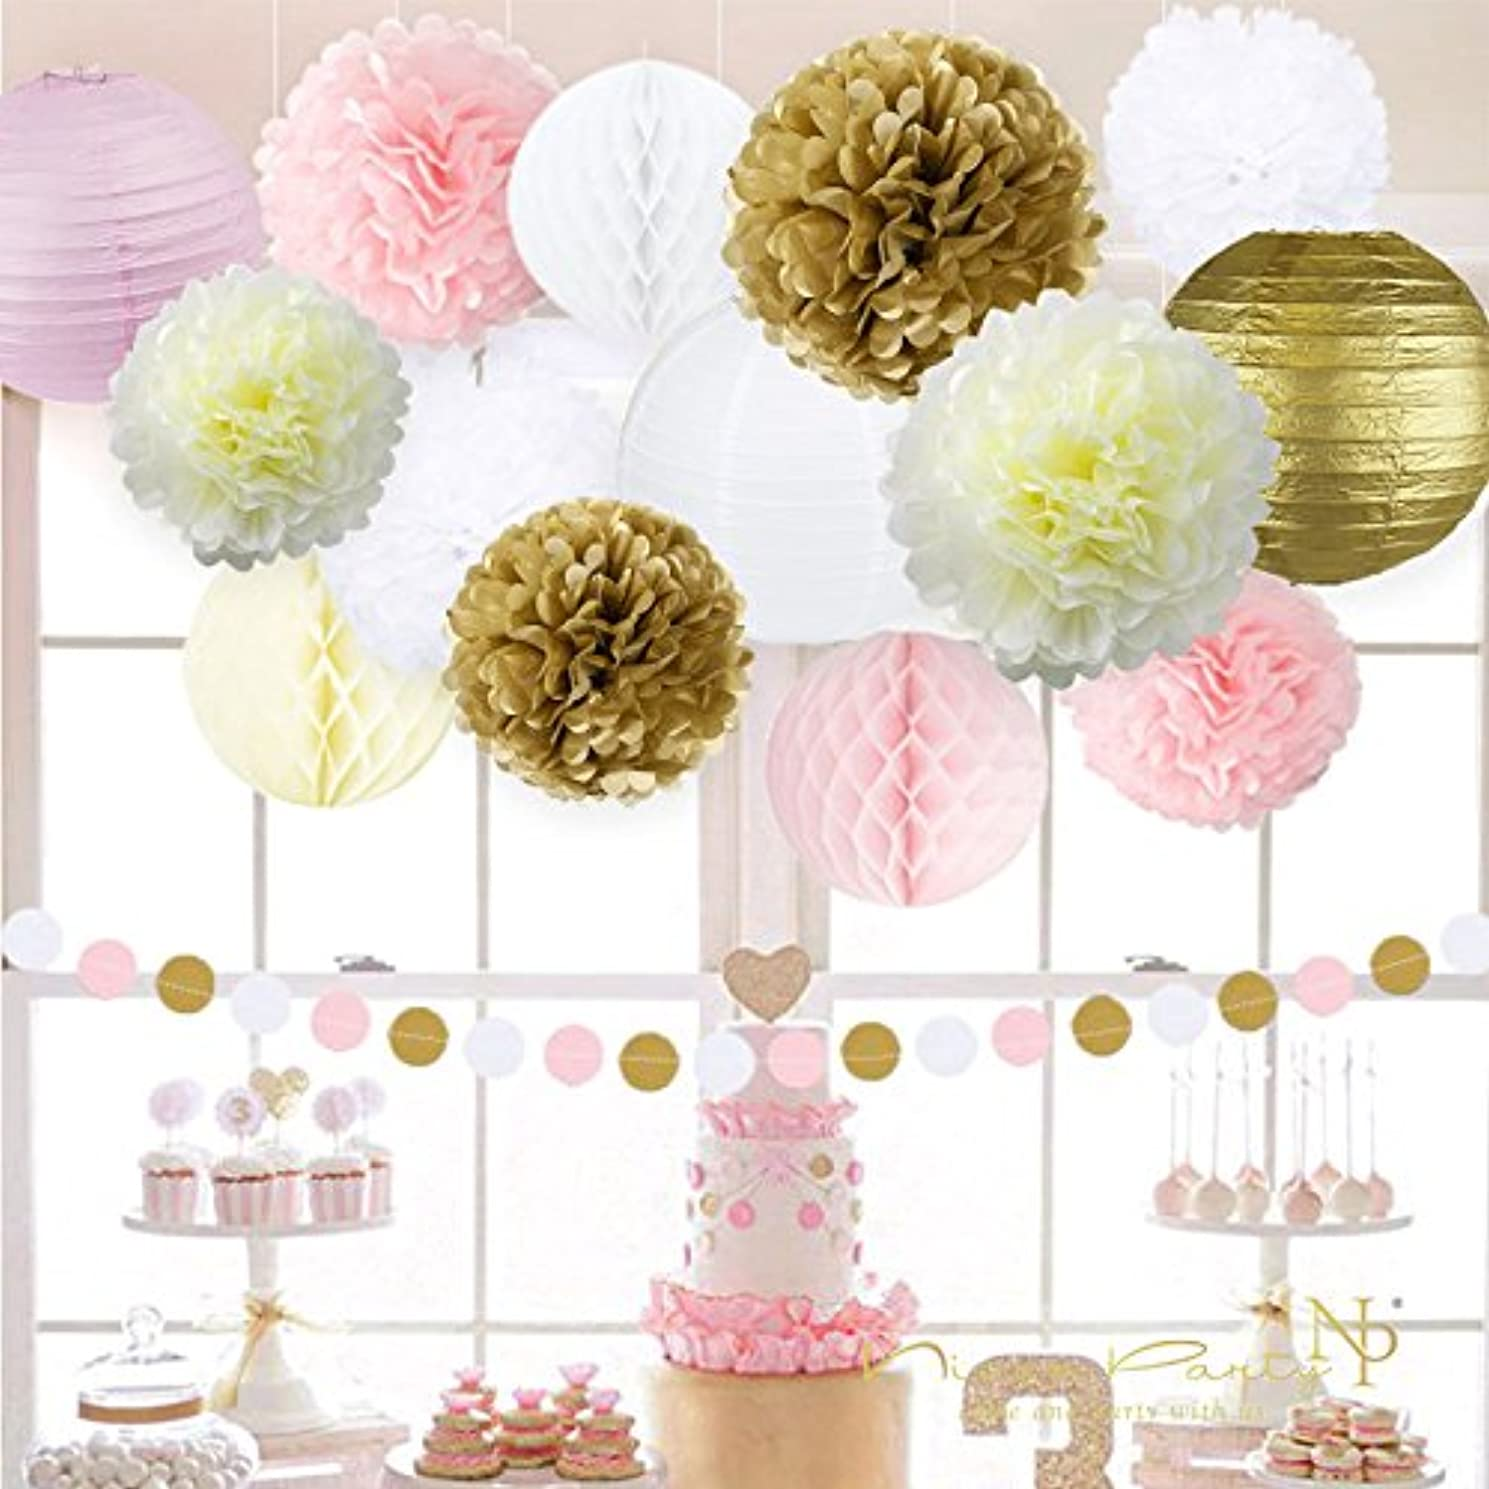 Pink and Gold Party Decorations, Pom Poms Flowers Kit +Circle paper Garland + Tissue Paper lantern for 1st birthday decorations Kids Birthday Bridal Shower Baby Shower wedding